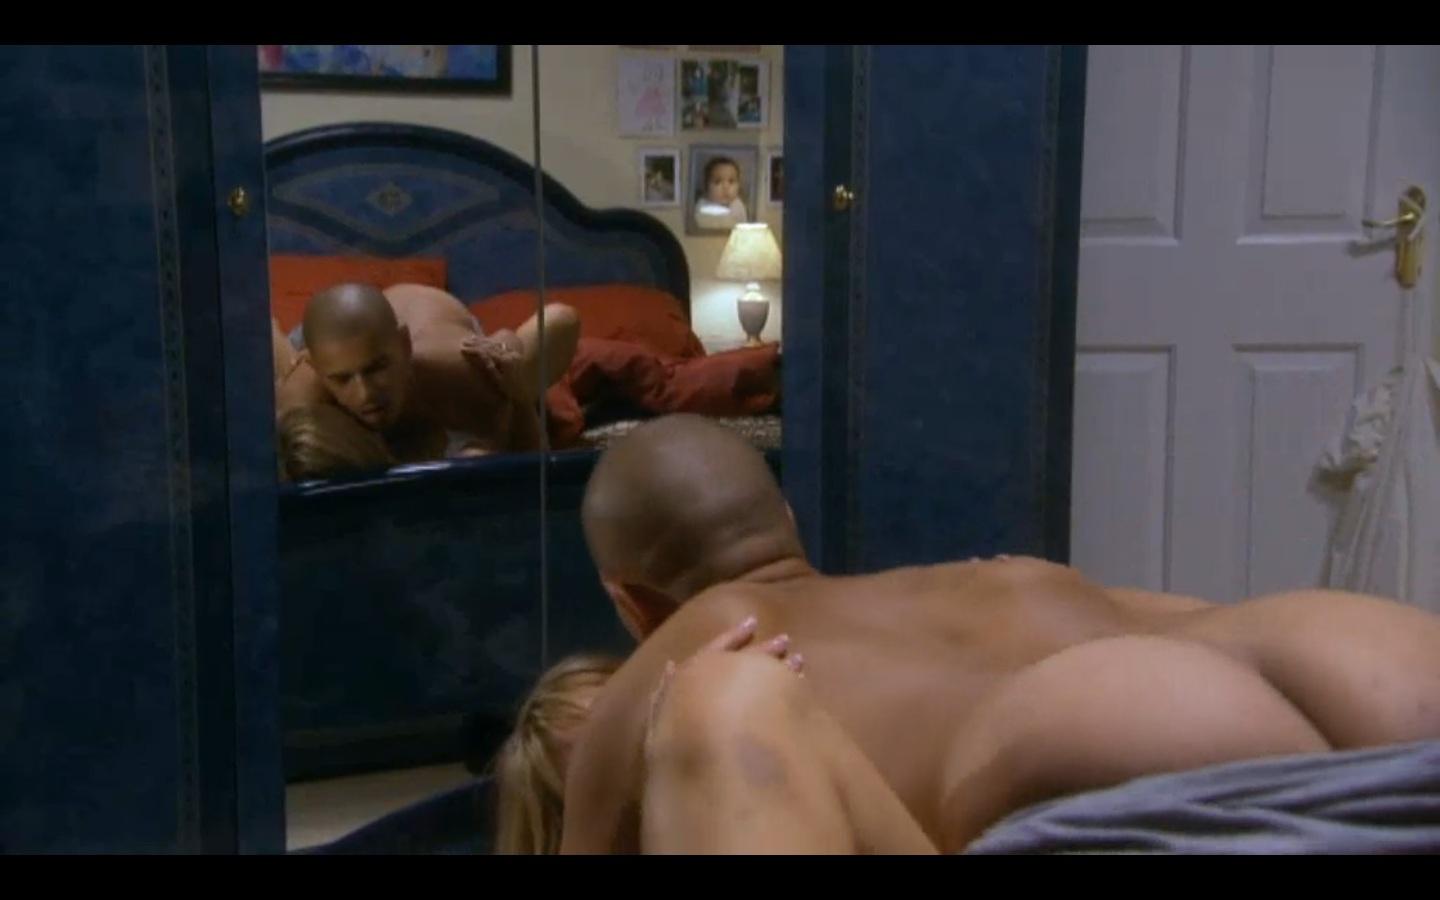 Free Clips Zoe Lucker Sex Scenes From The Series Footballers Wives 56